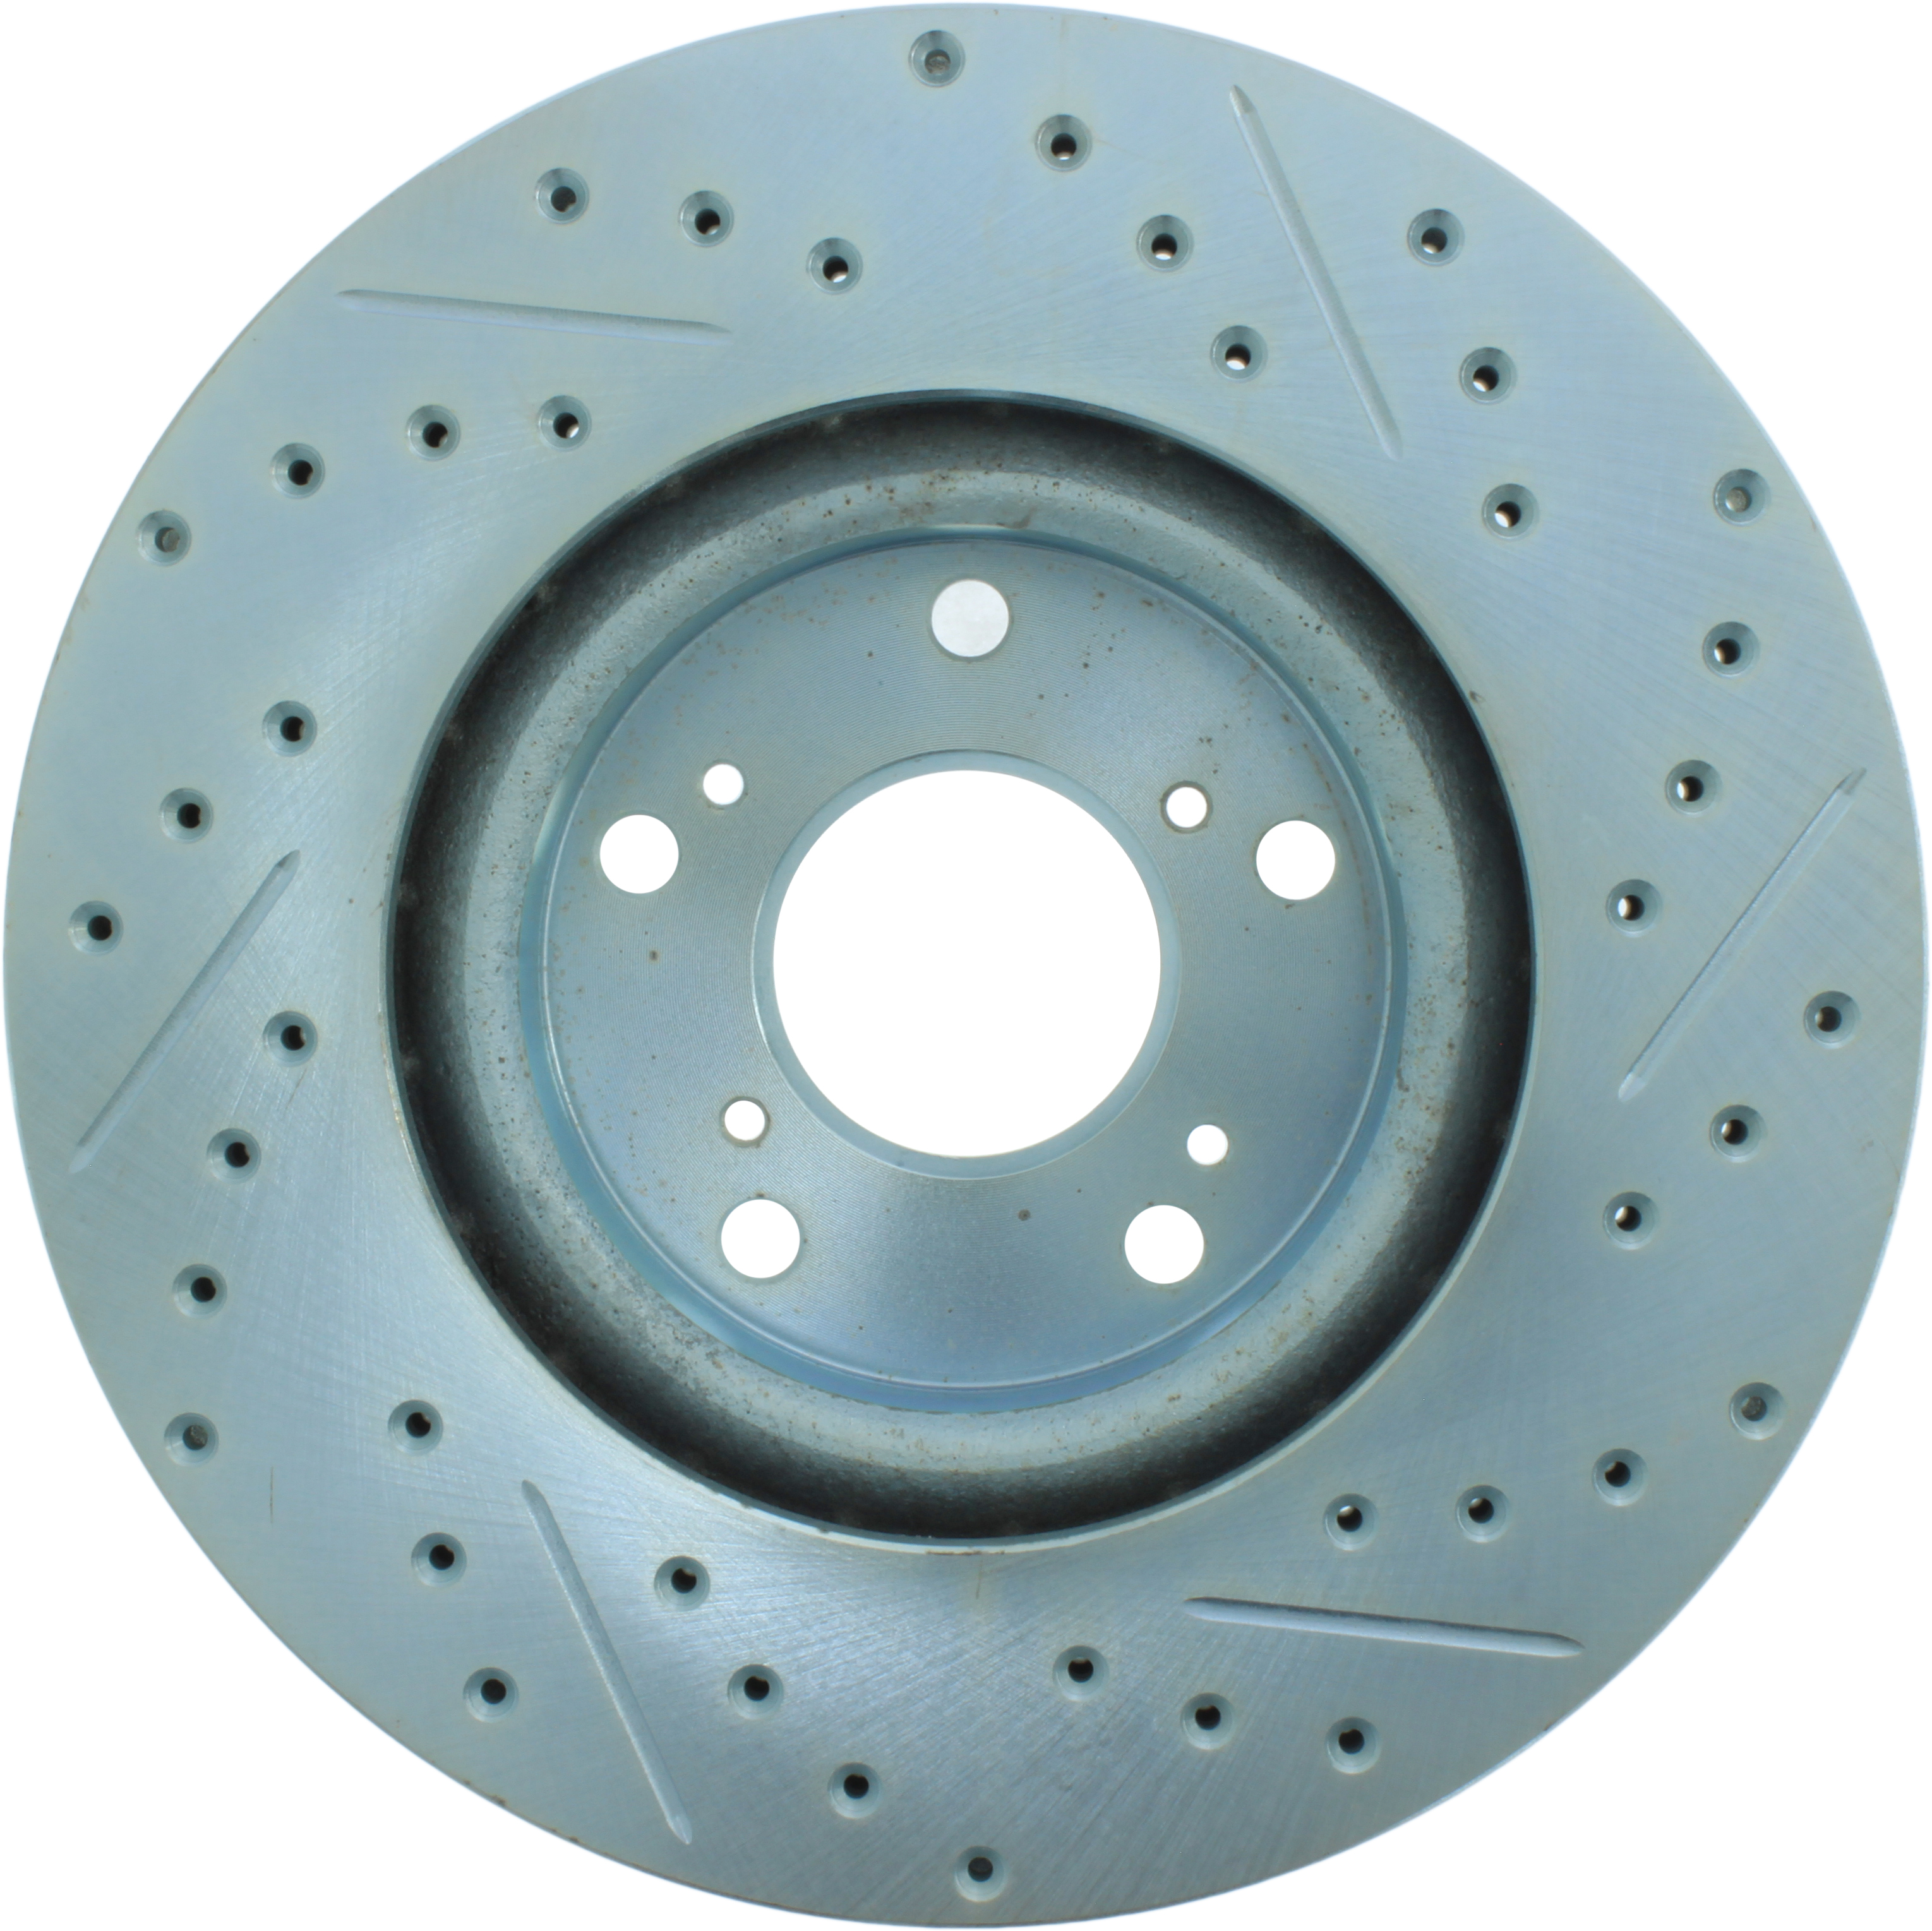 StopTech Disc Brake Rotor Front Right For Acura RSX / CR-V